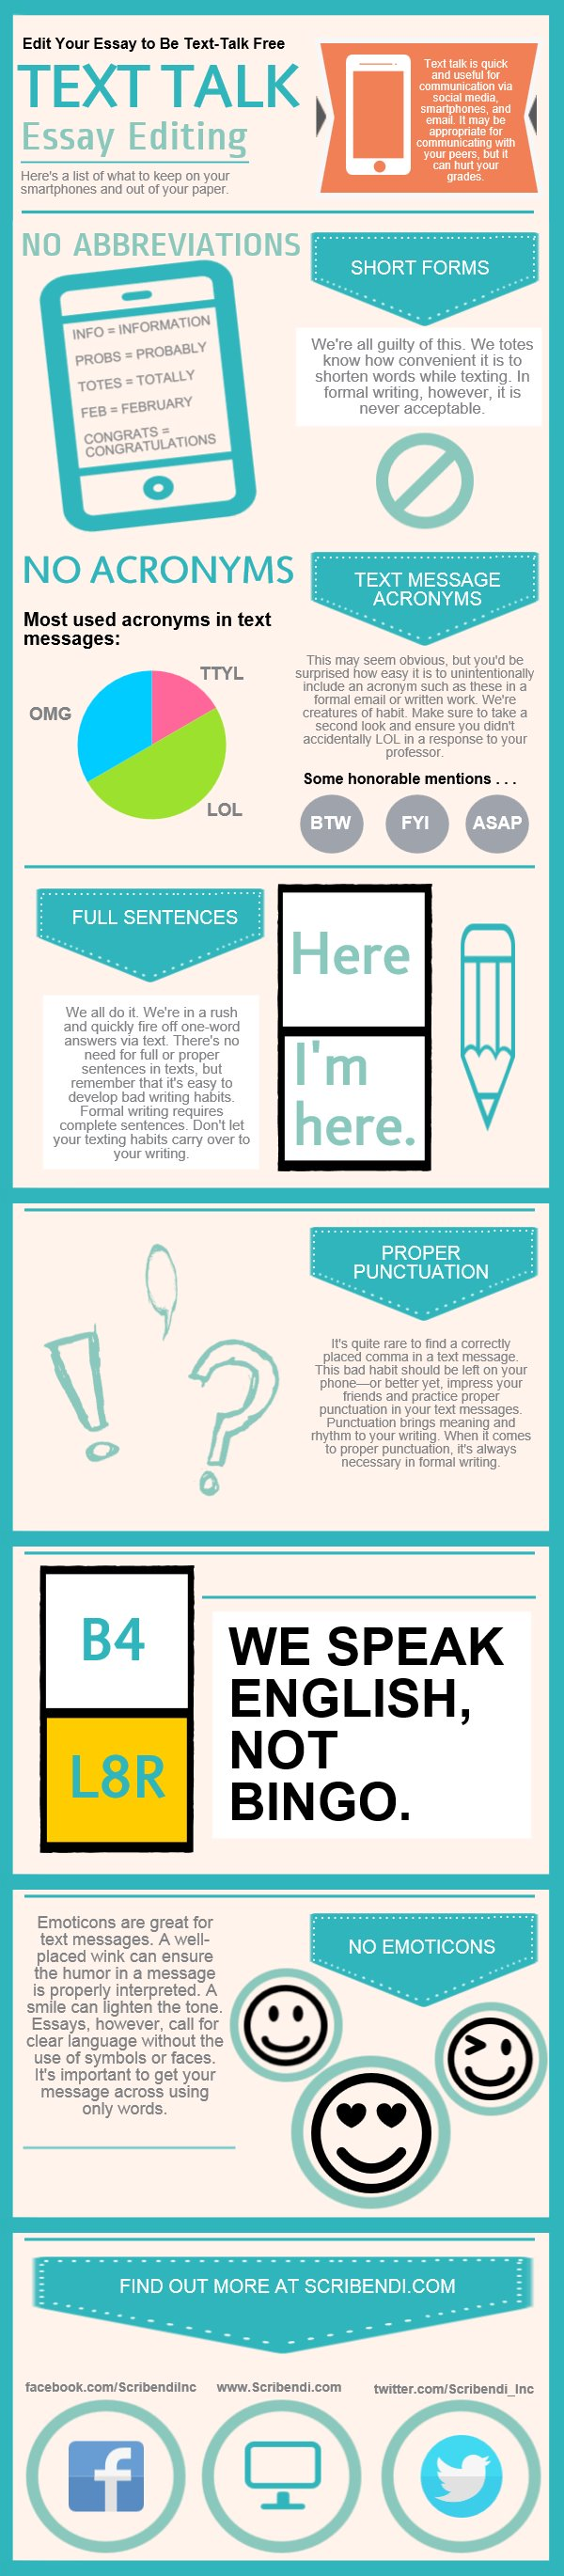 edit your essay to be text talk scribendi com s infographic about making sure your essay editing includes eliminating text talk